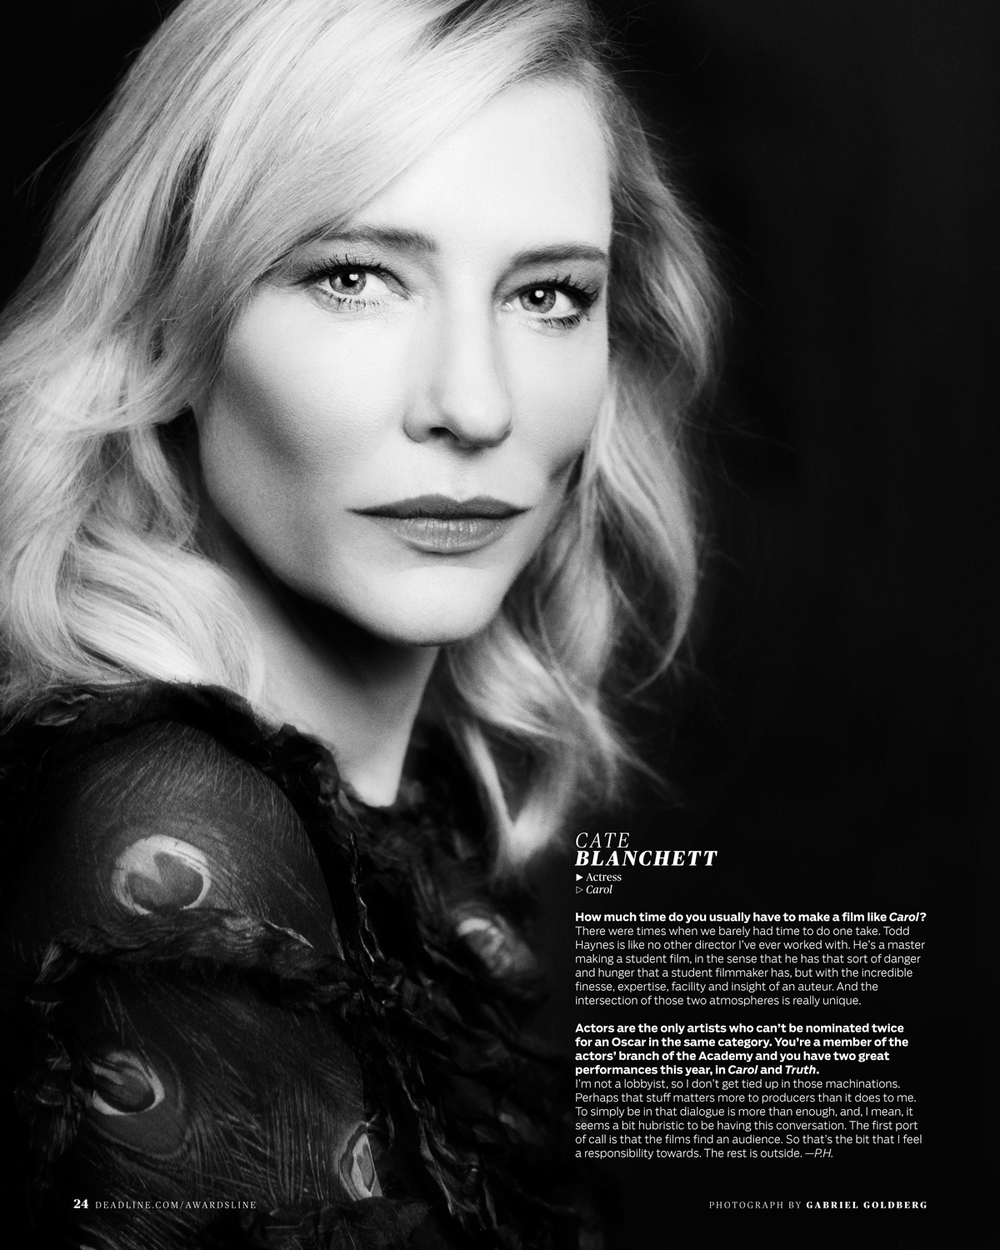 Deadline-AwardsLine_Dialogue_CateBlanchett.jpg